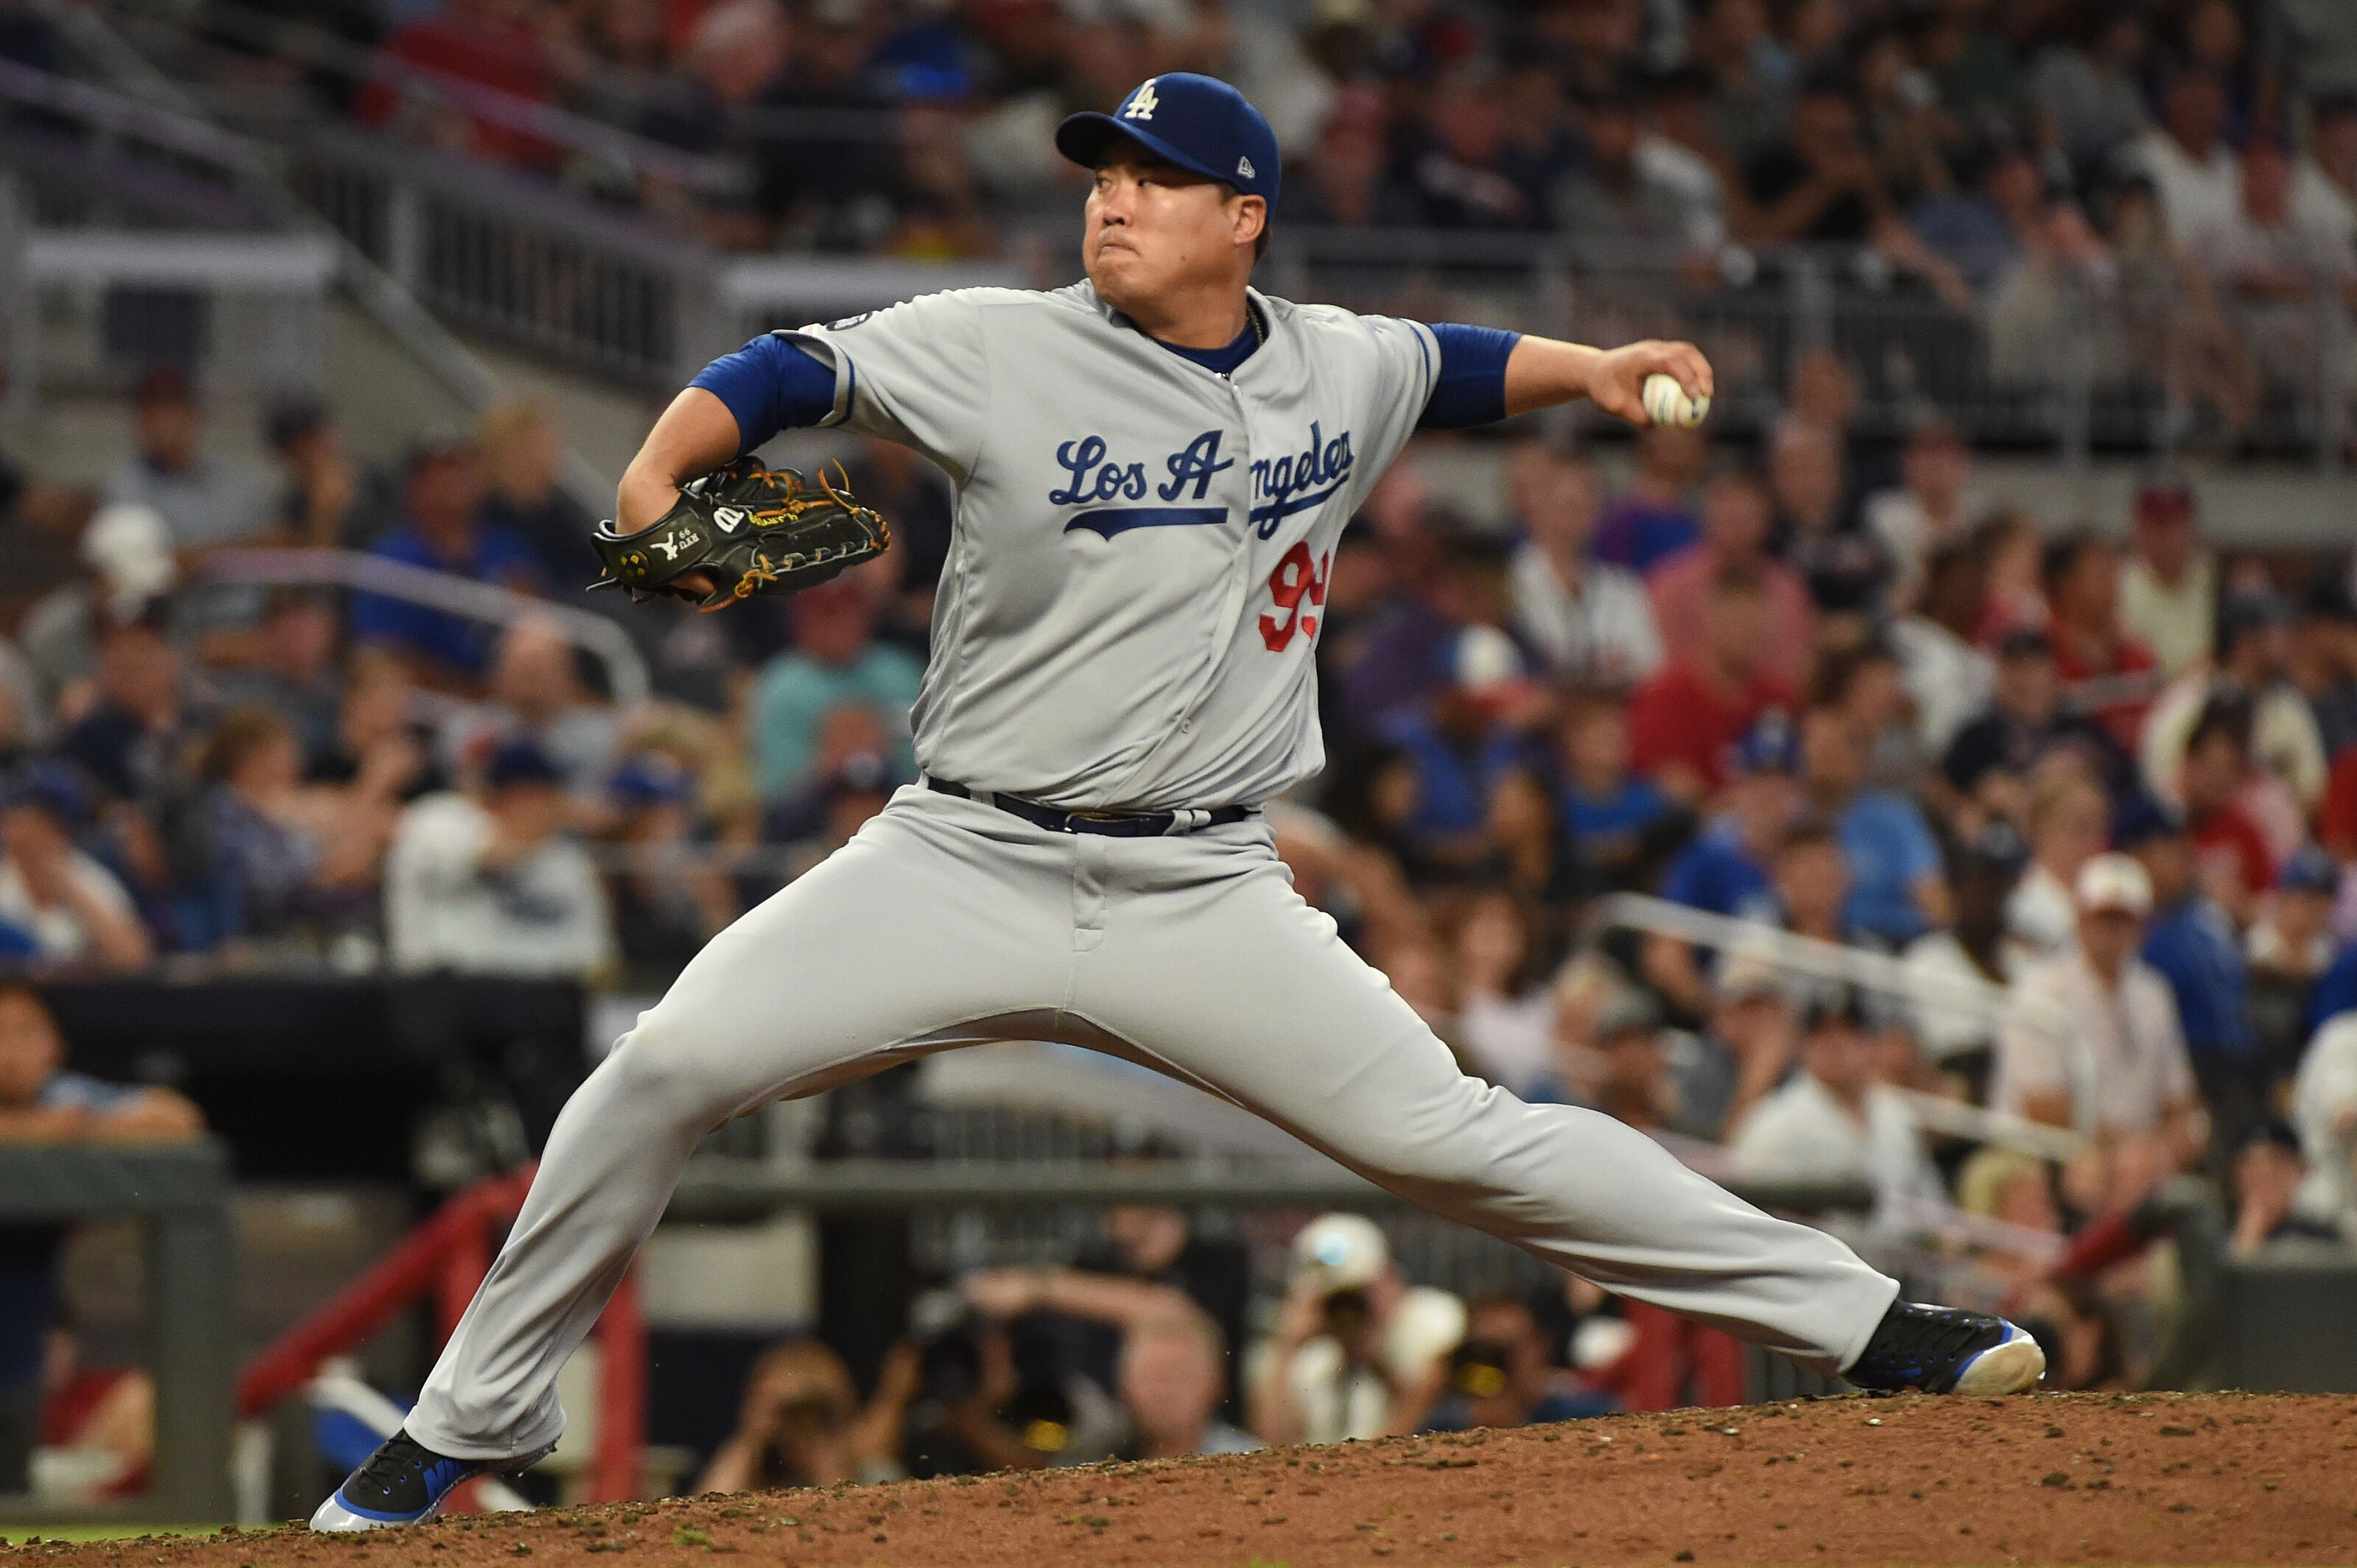 Dodgers: Hyun-Jin Ryu looks to hold off deGrom in Cy Young race